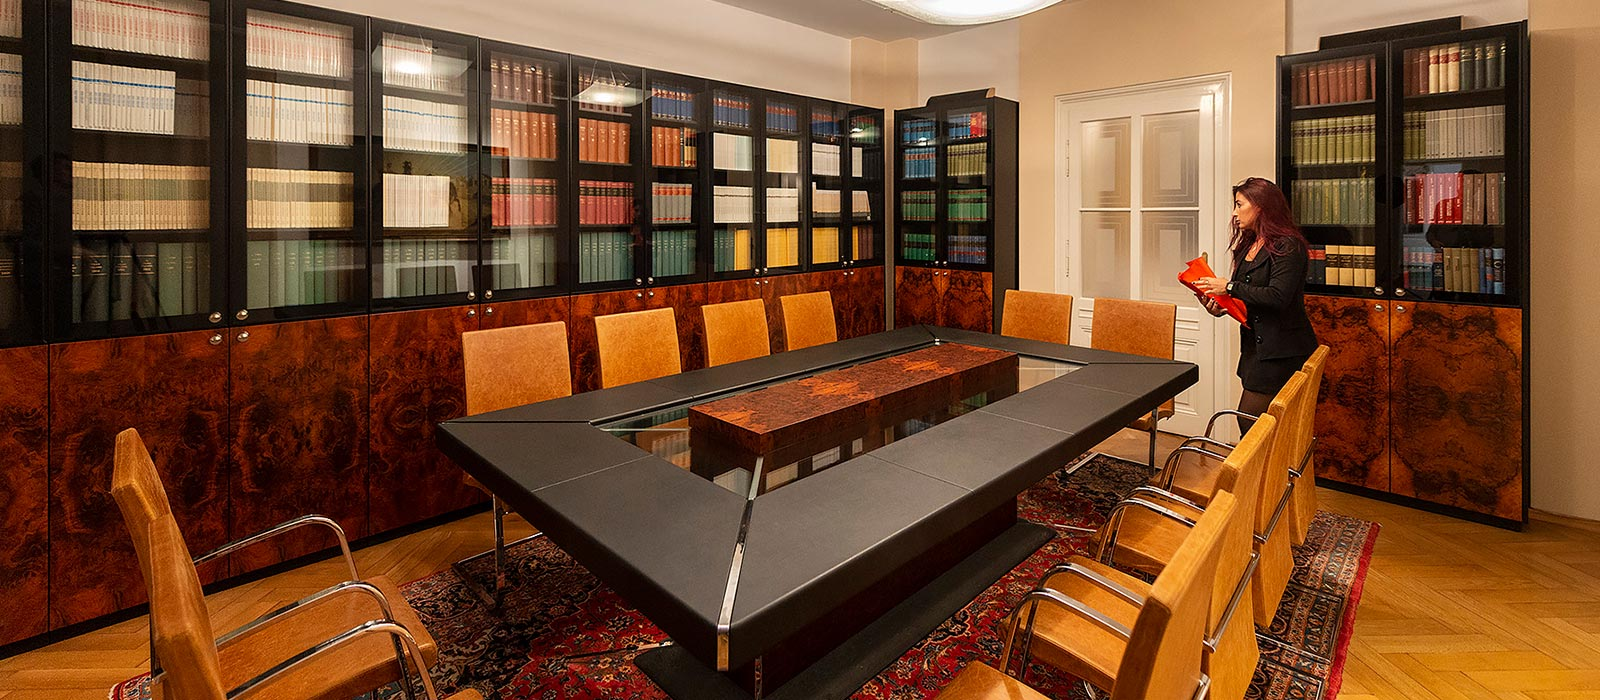 The meeting room of the International law firms in Italy